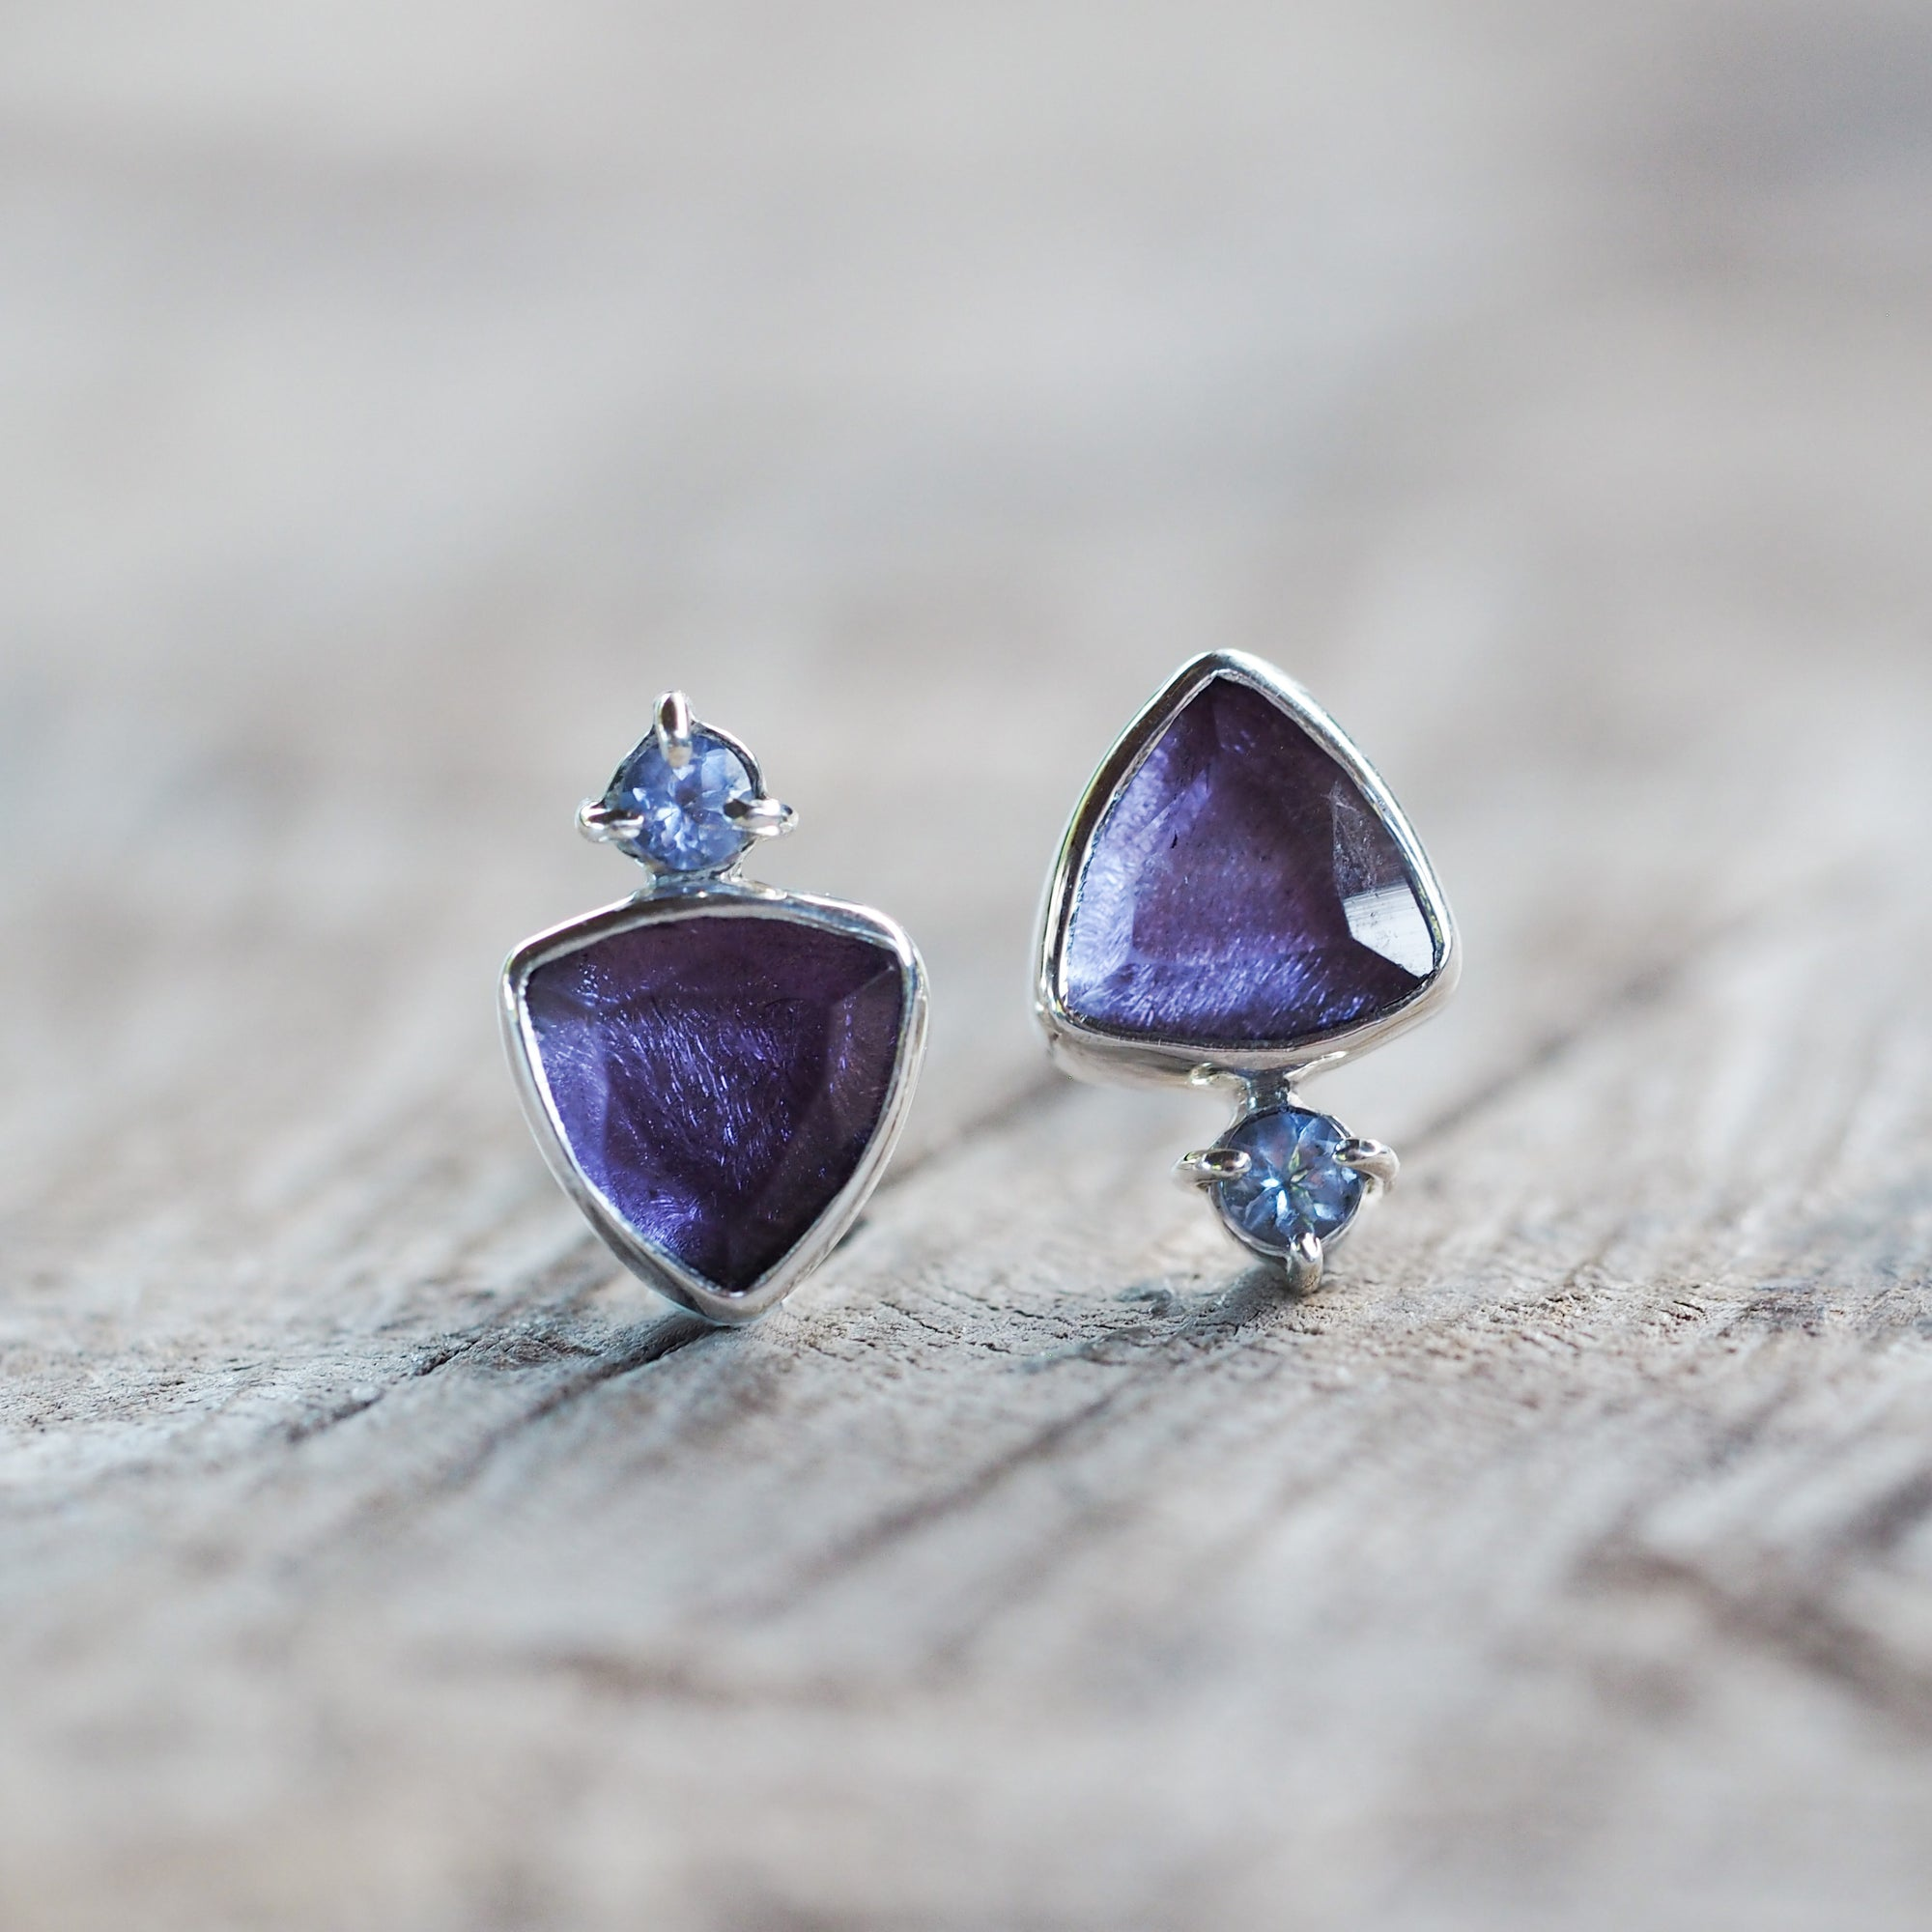 AA ANNISA Mismatched Amethyst and Tanzanite Earrings - Gardens of the Sun Jewelry